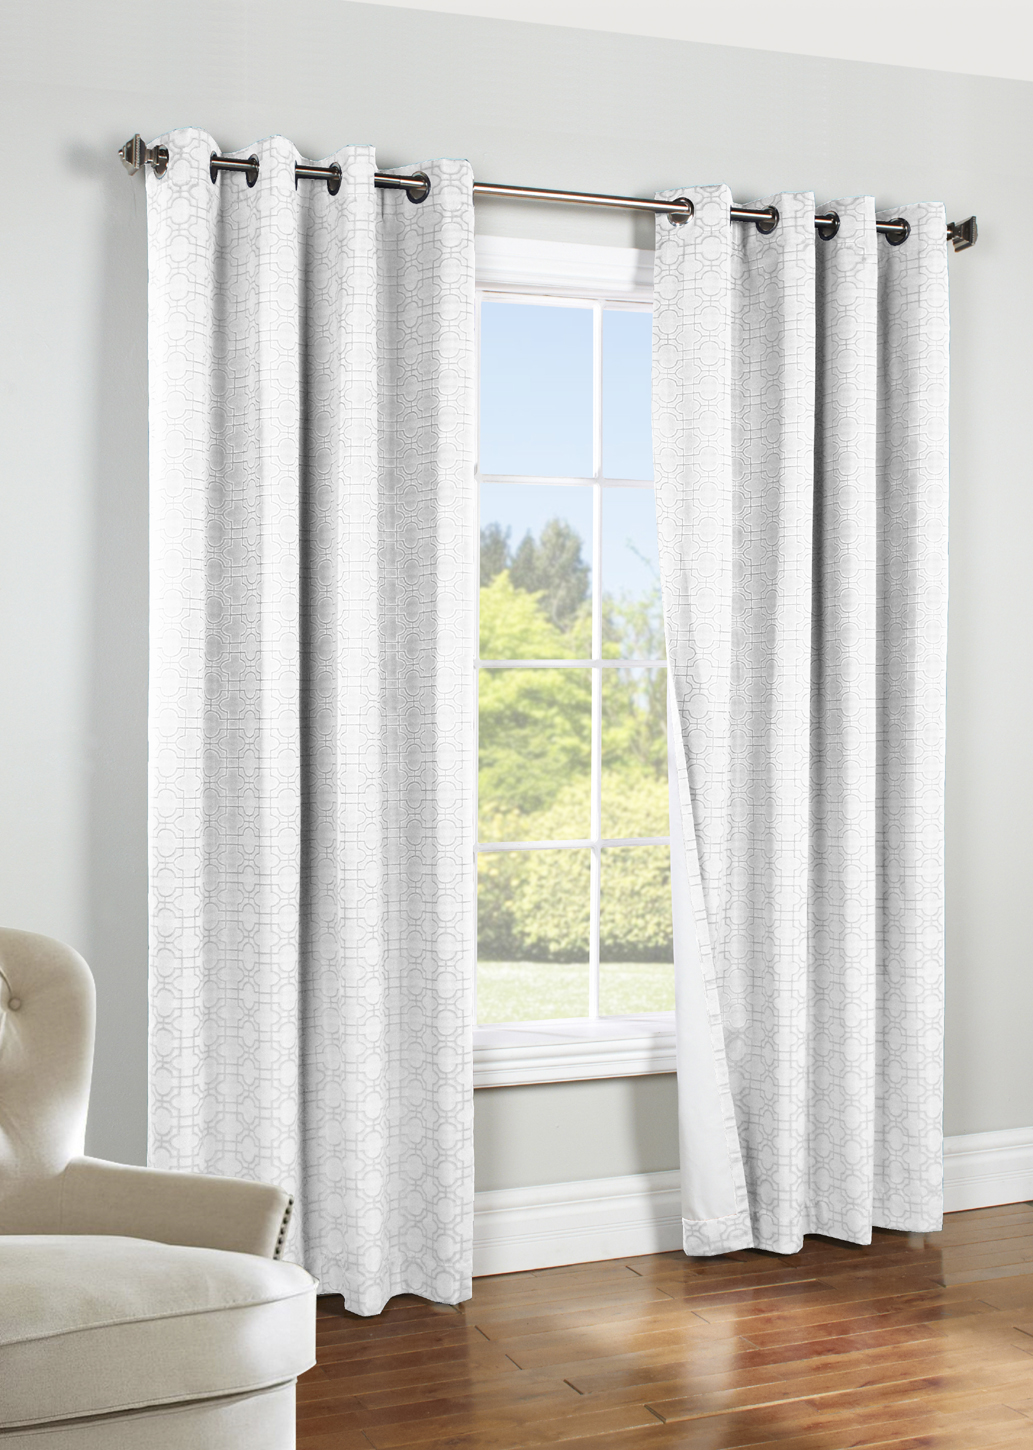 curtain eclipse home walmart blackout review canada drapes curtains decoration white kids